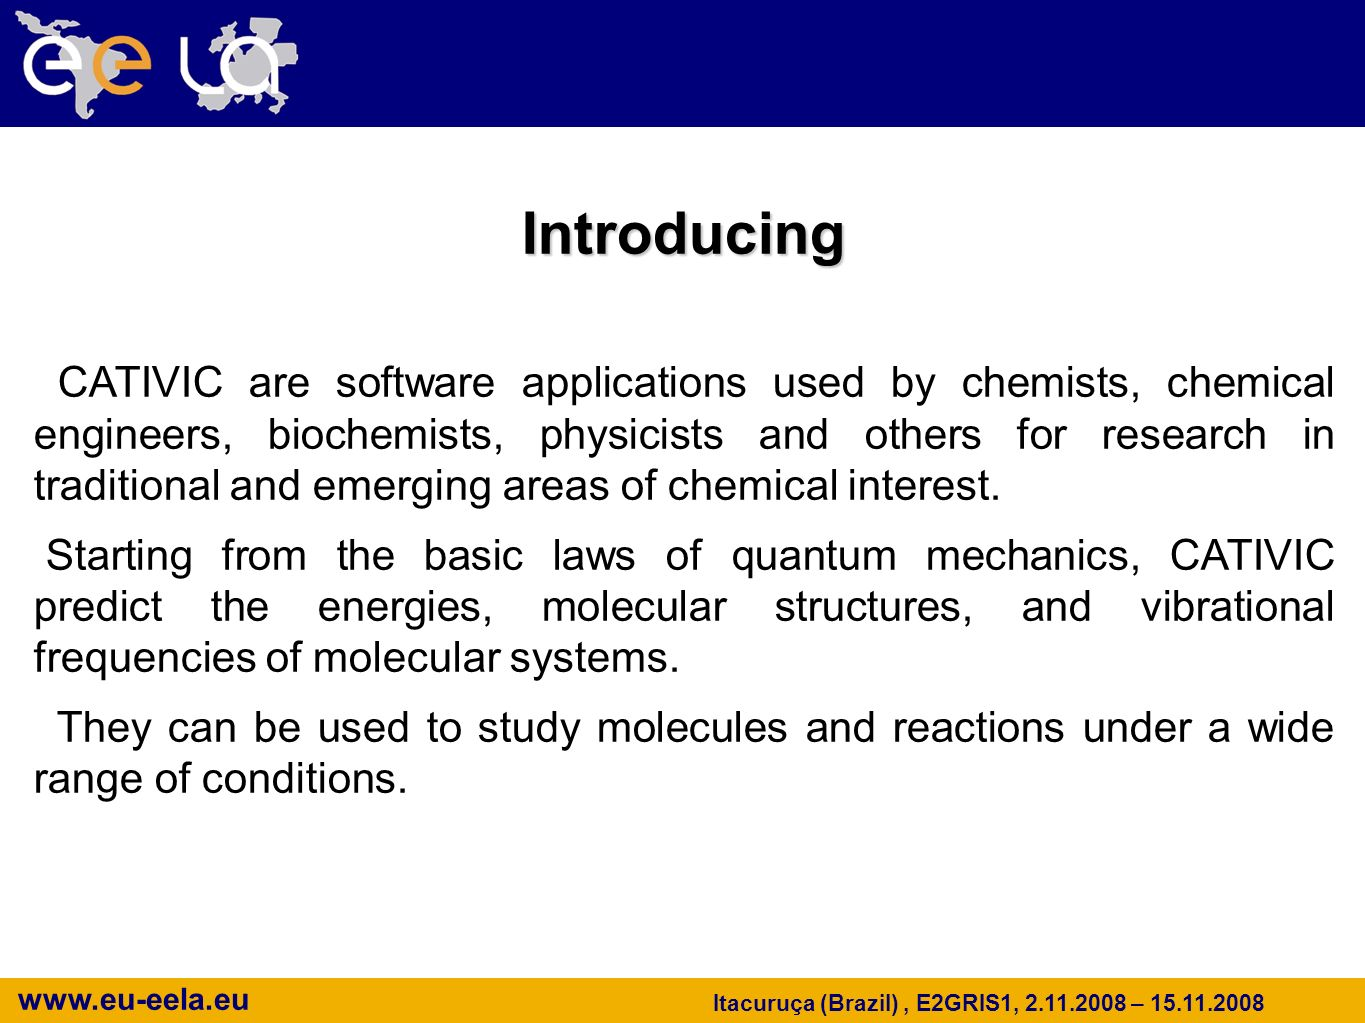 www.eu-eela.eu Itacuruça (Brazil), E2GRIS1, 2.11.2008 – 15.11.2008 Introducing CATIVIC are software applications used by chemists, chemical engineers,